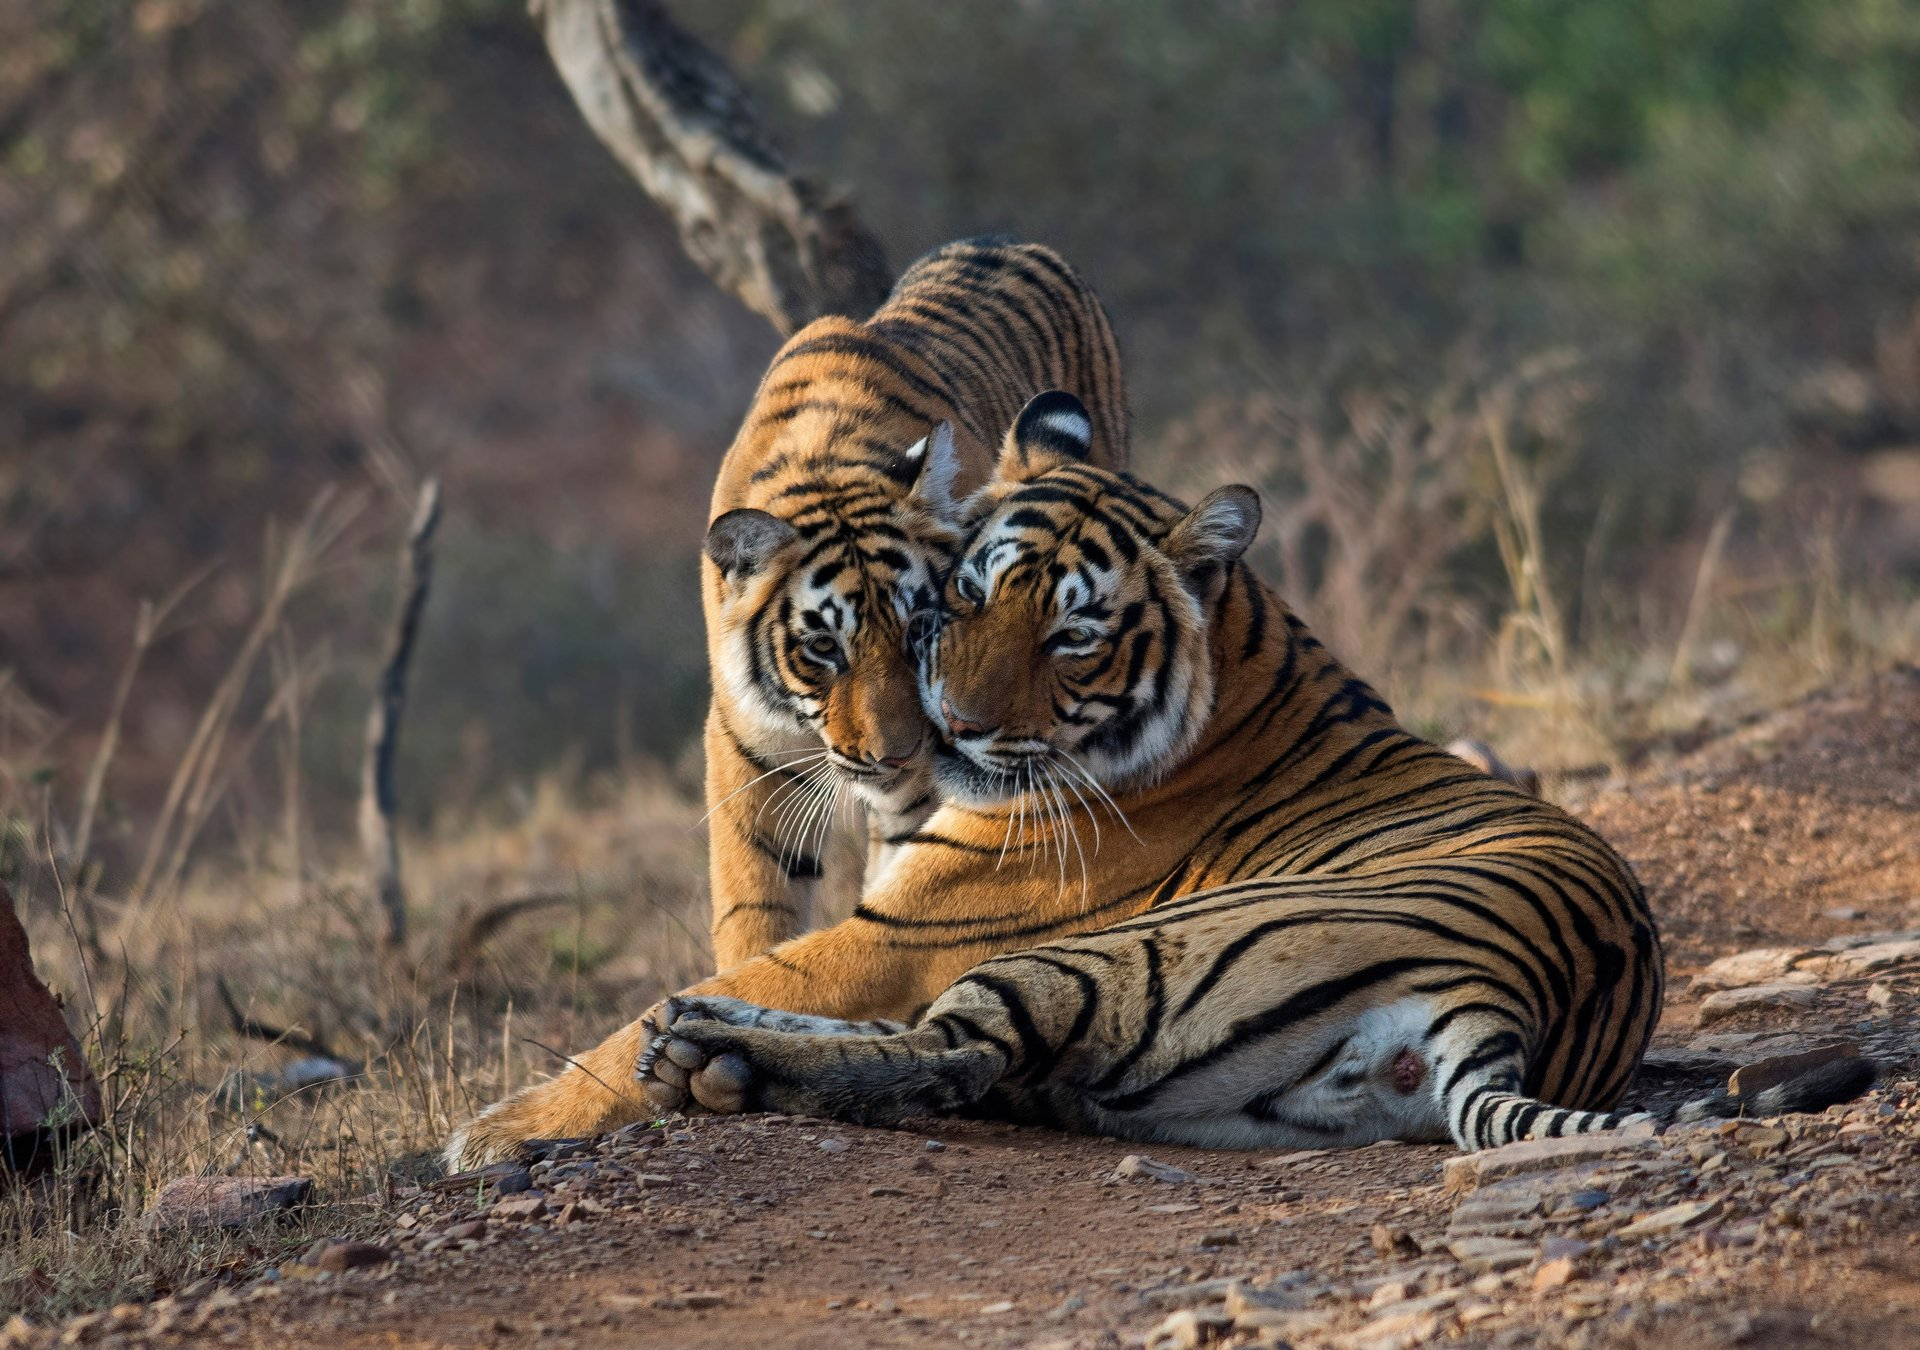 pair of tigers in the wild at ranthambore